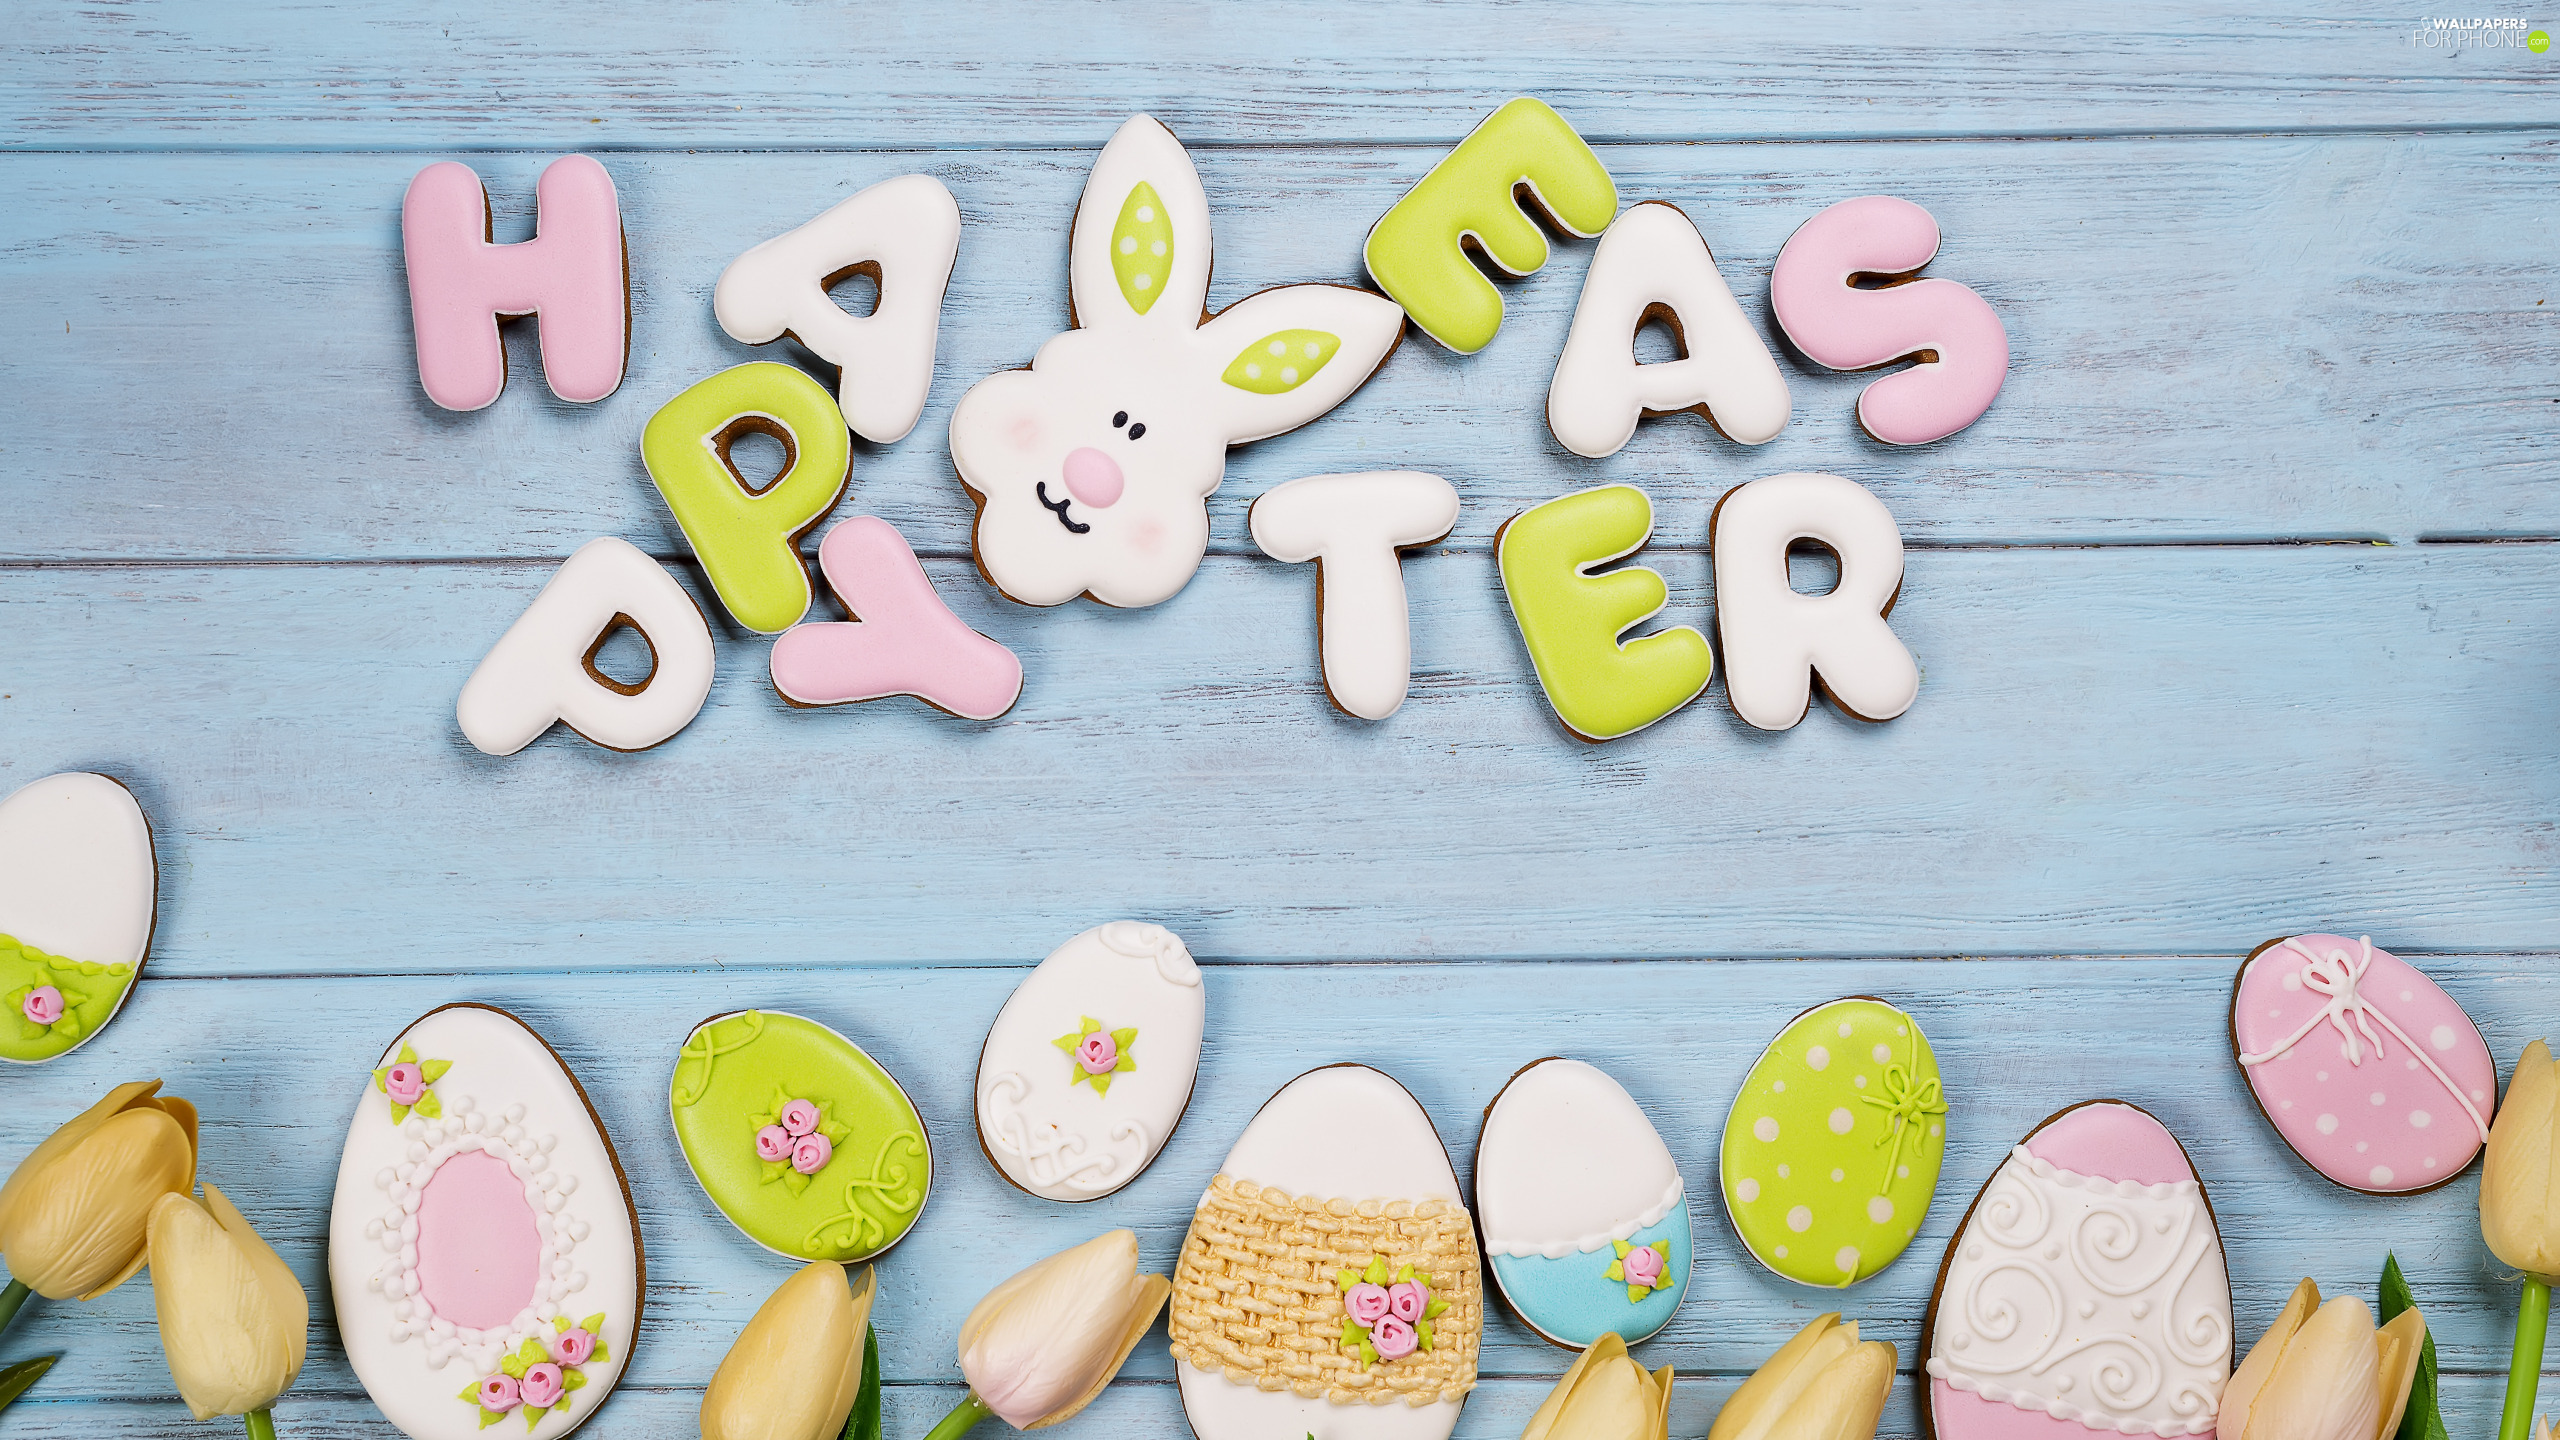 Tulips, eggs, Happy Easter, rabbit, Cookies, text, Easter